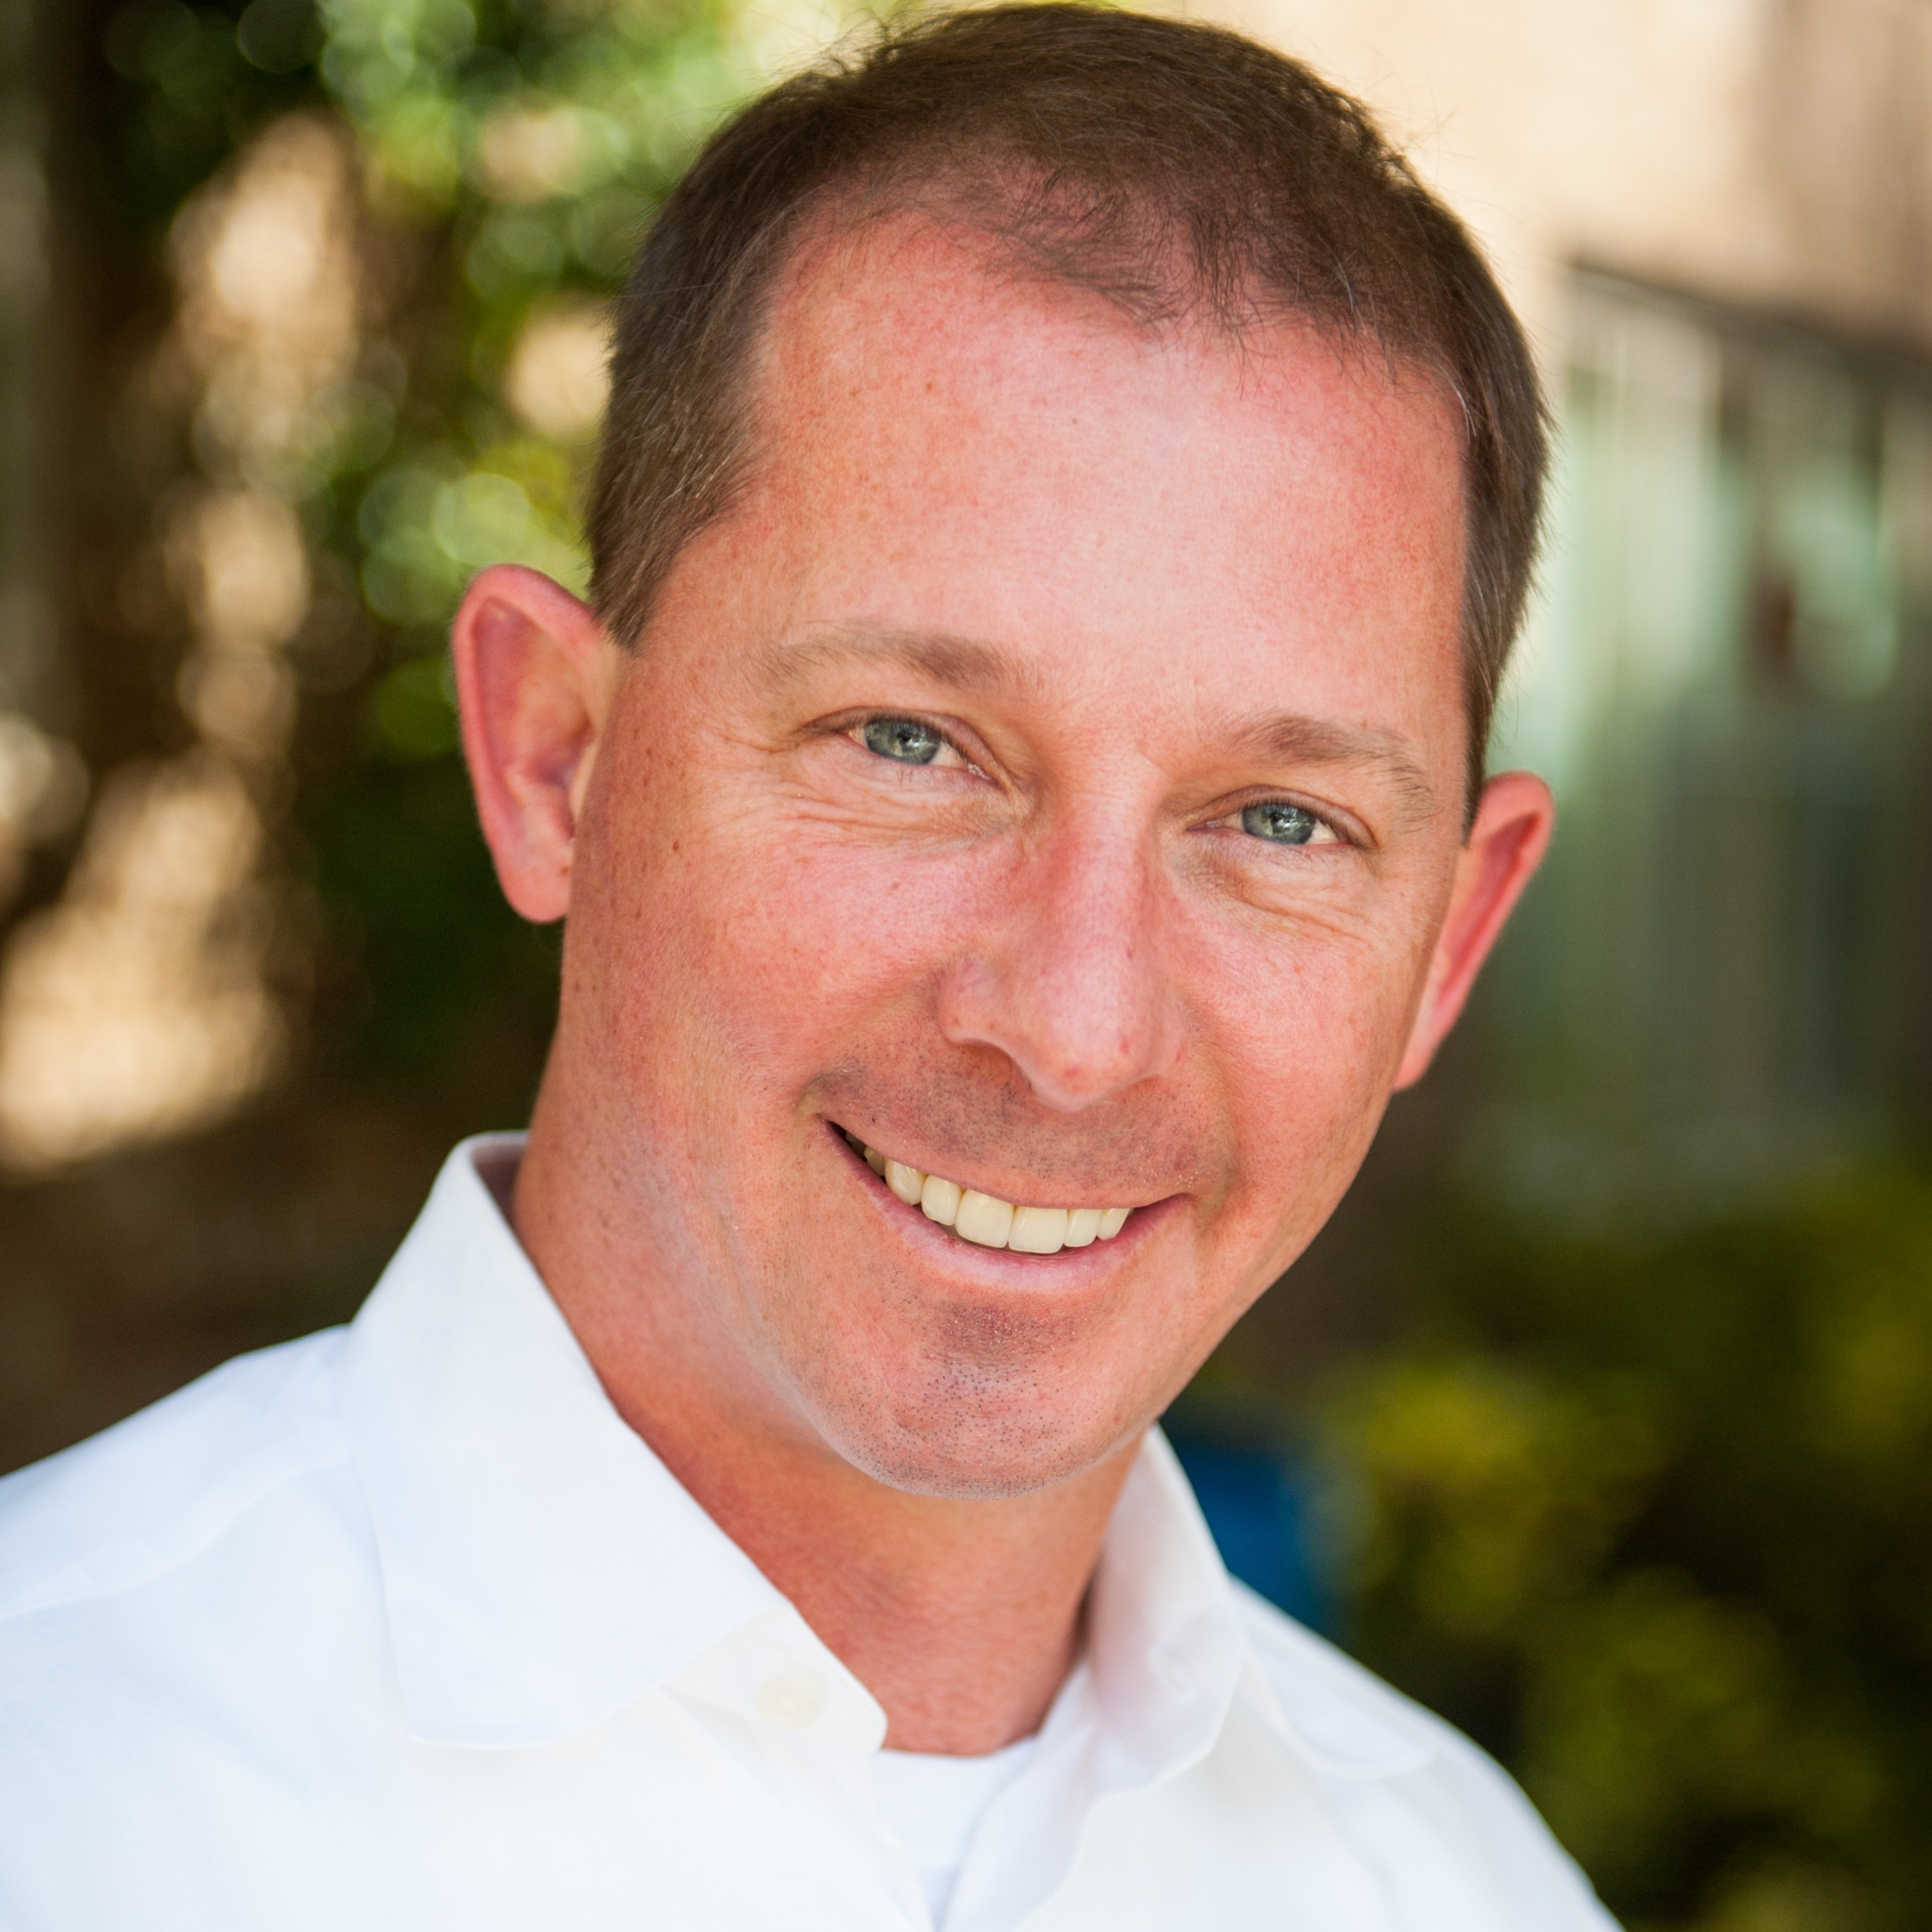 Dr. Todd Gililland of GO Orthodontics